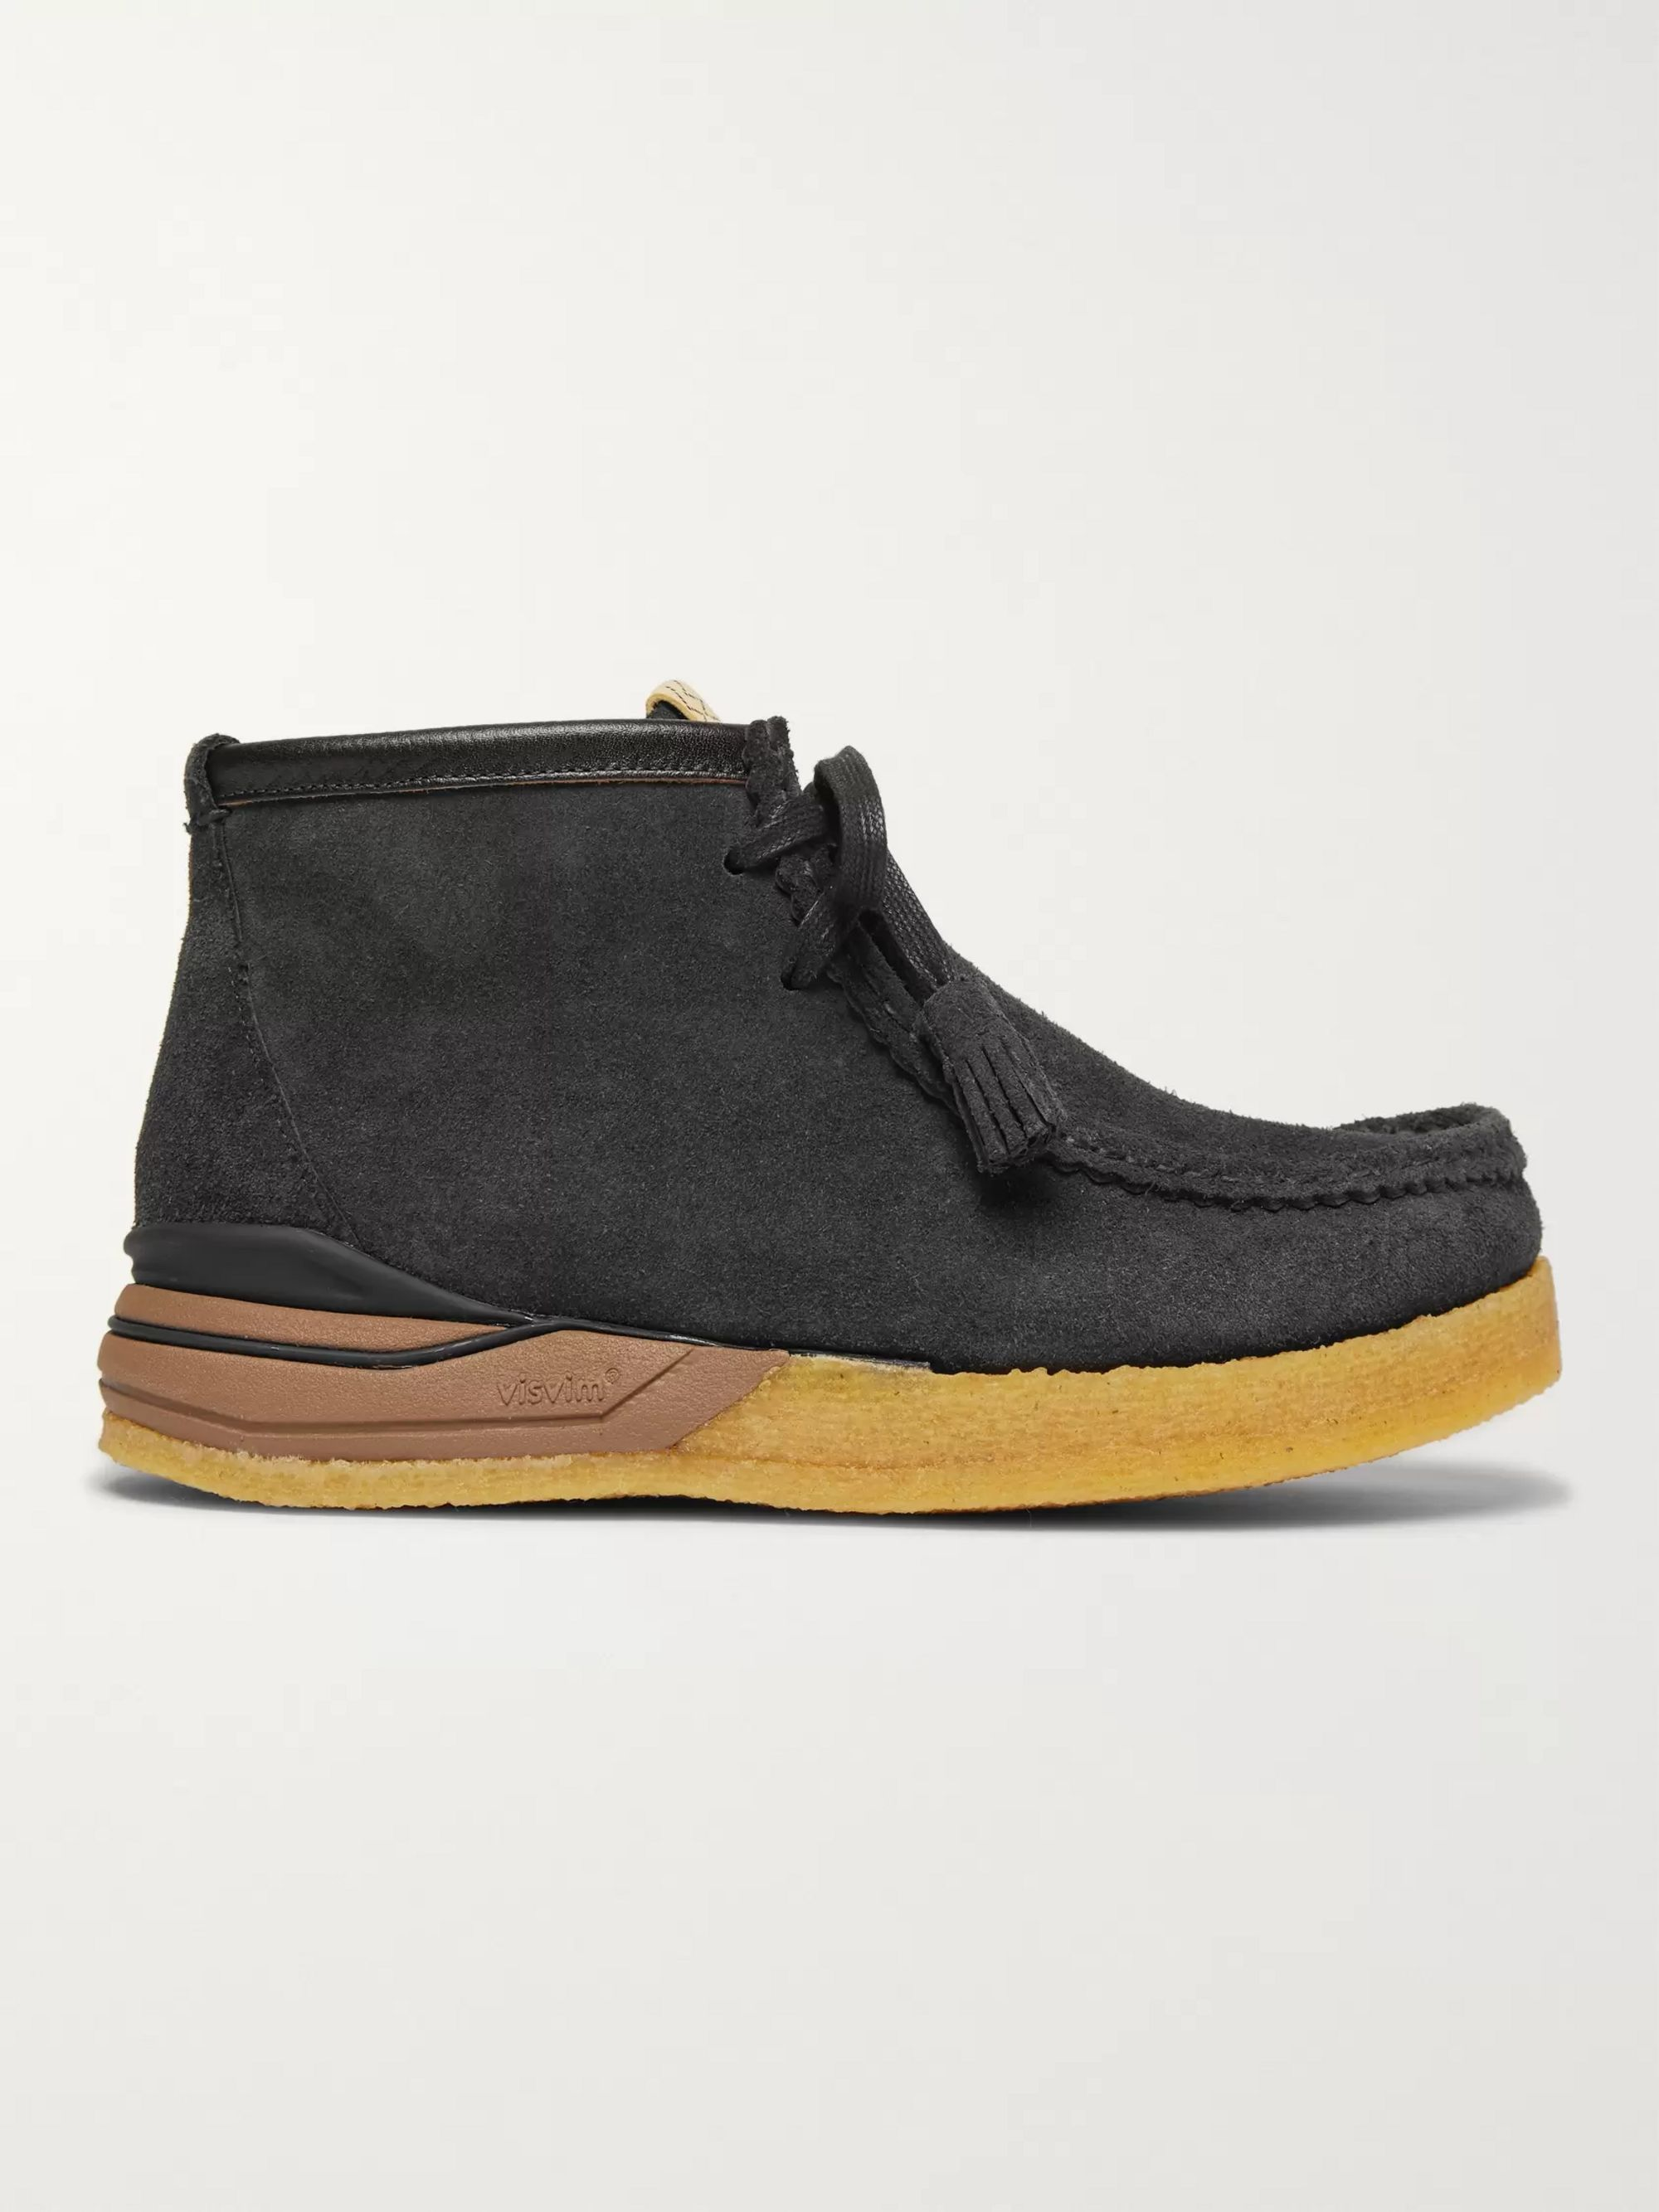 visvim Beuys Trekker Folk Leather-Trimmed Suede Boots